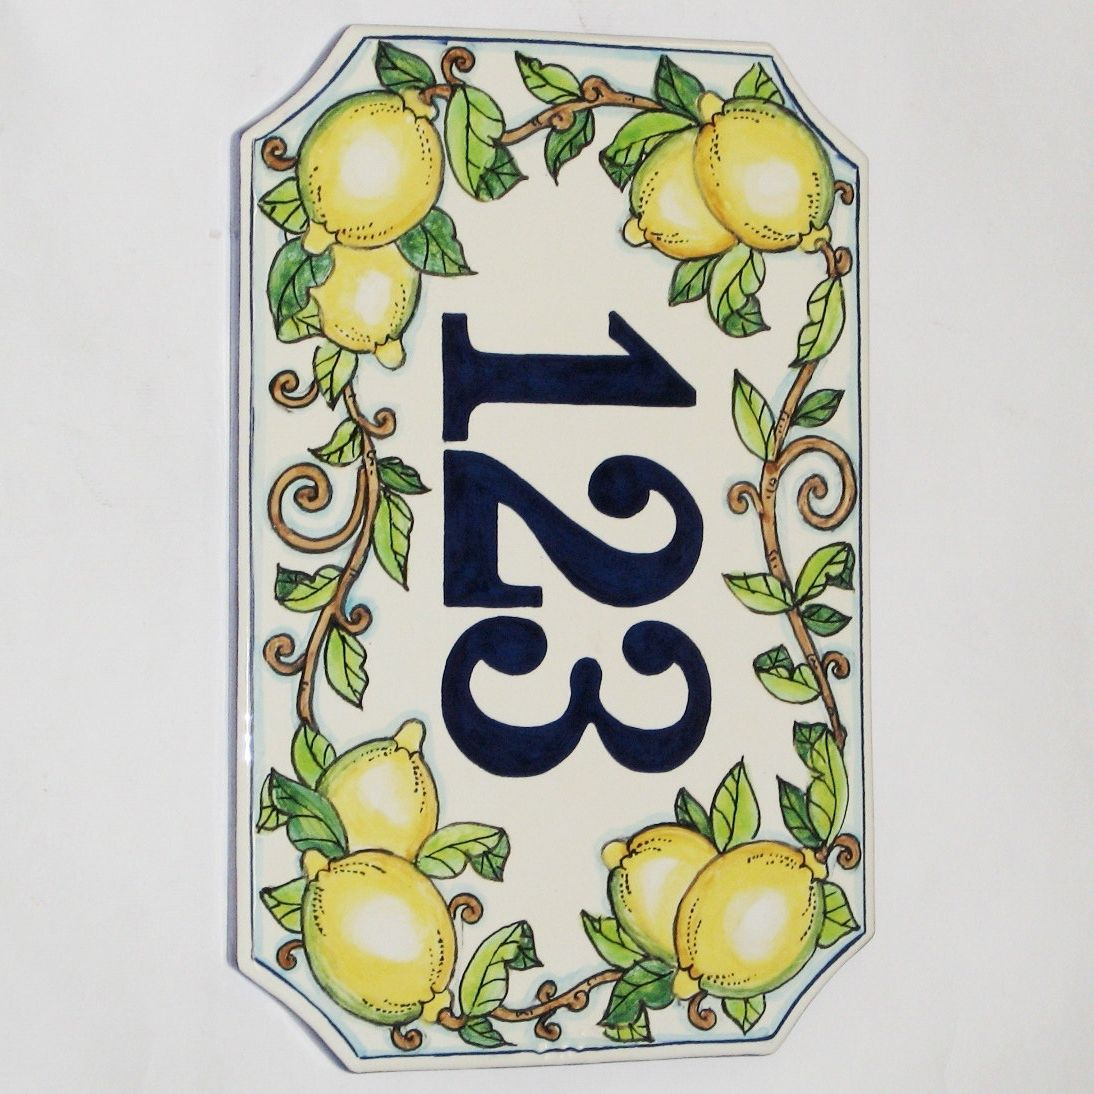 House numbers house number plaqueitalian house numbers ceramic house numbers house number plaqueitalian house numbers ceramic house numbers outdoor dailygadgetfo Gallery